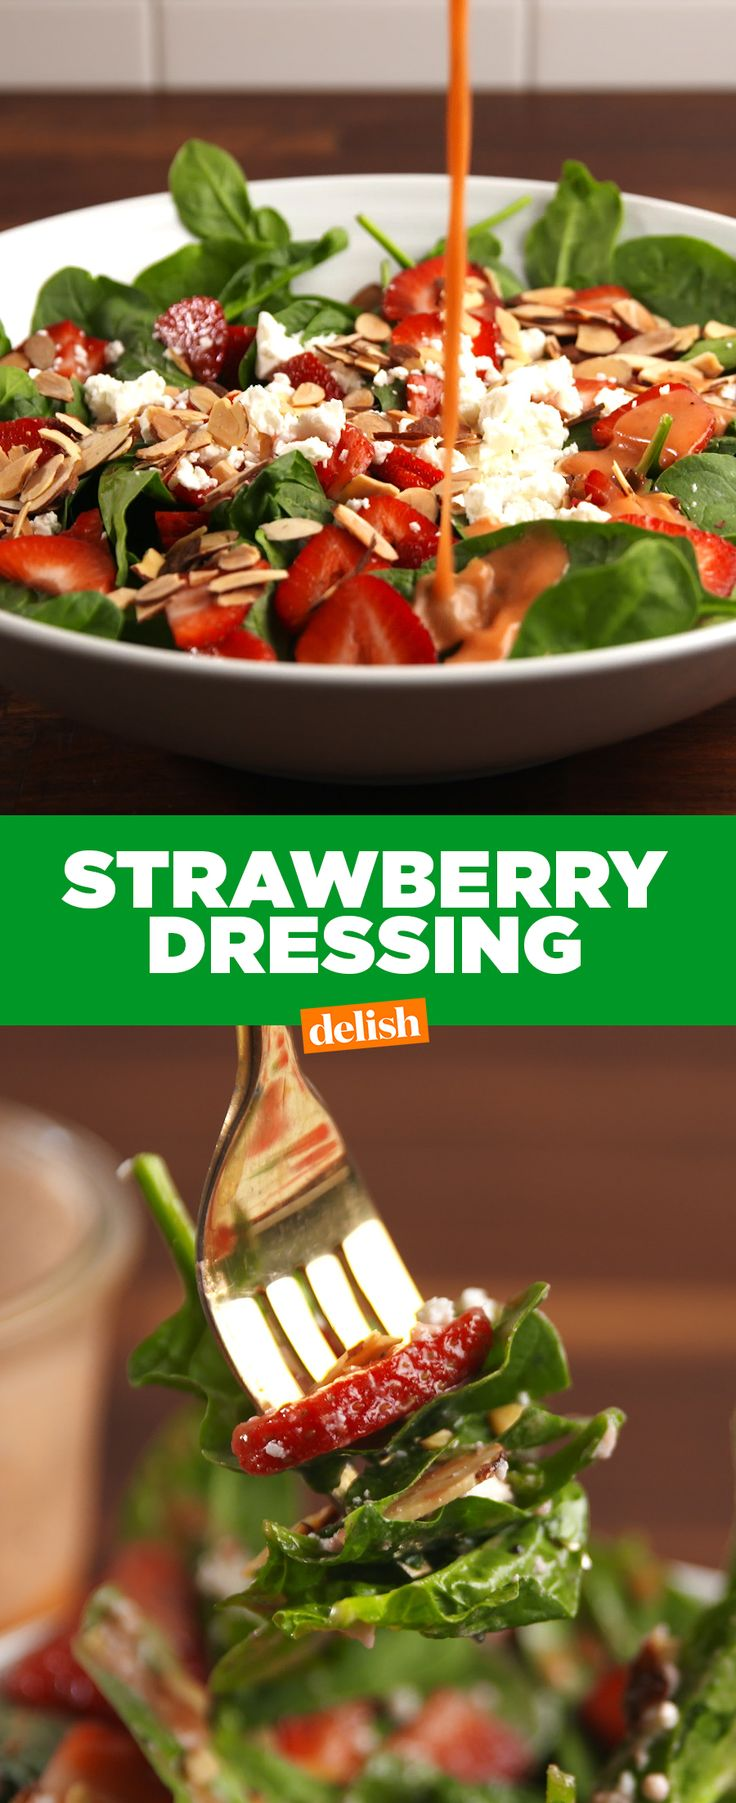 If you love Panera's Strawberry Dressing, you're gonna be OBSESSED with this one. Get the recipe at Delish.com.